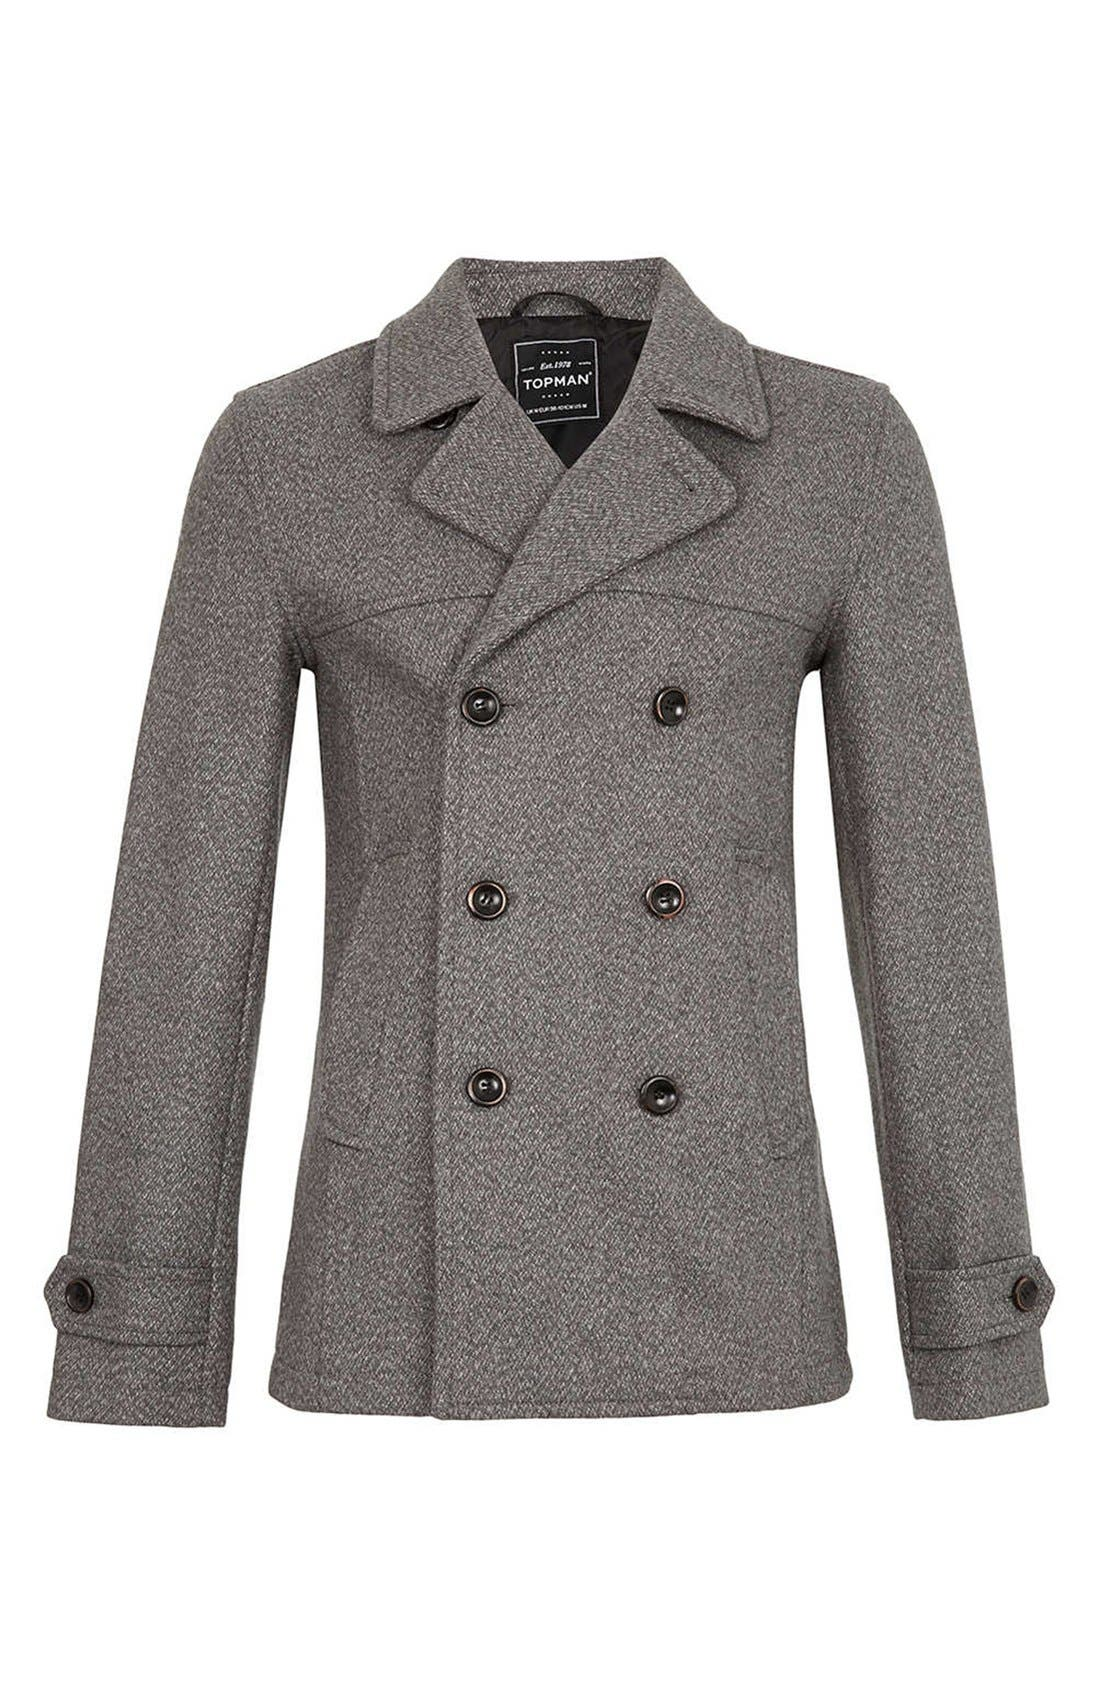 Main Image - Topman Skinny Fit Double Breasted Peacoat